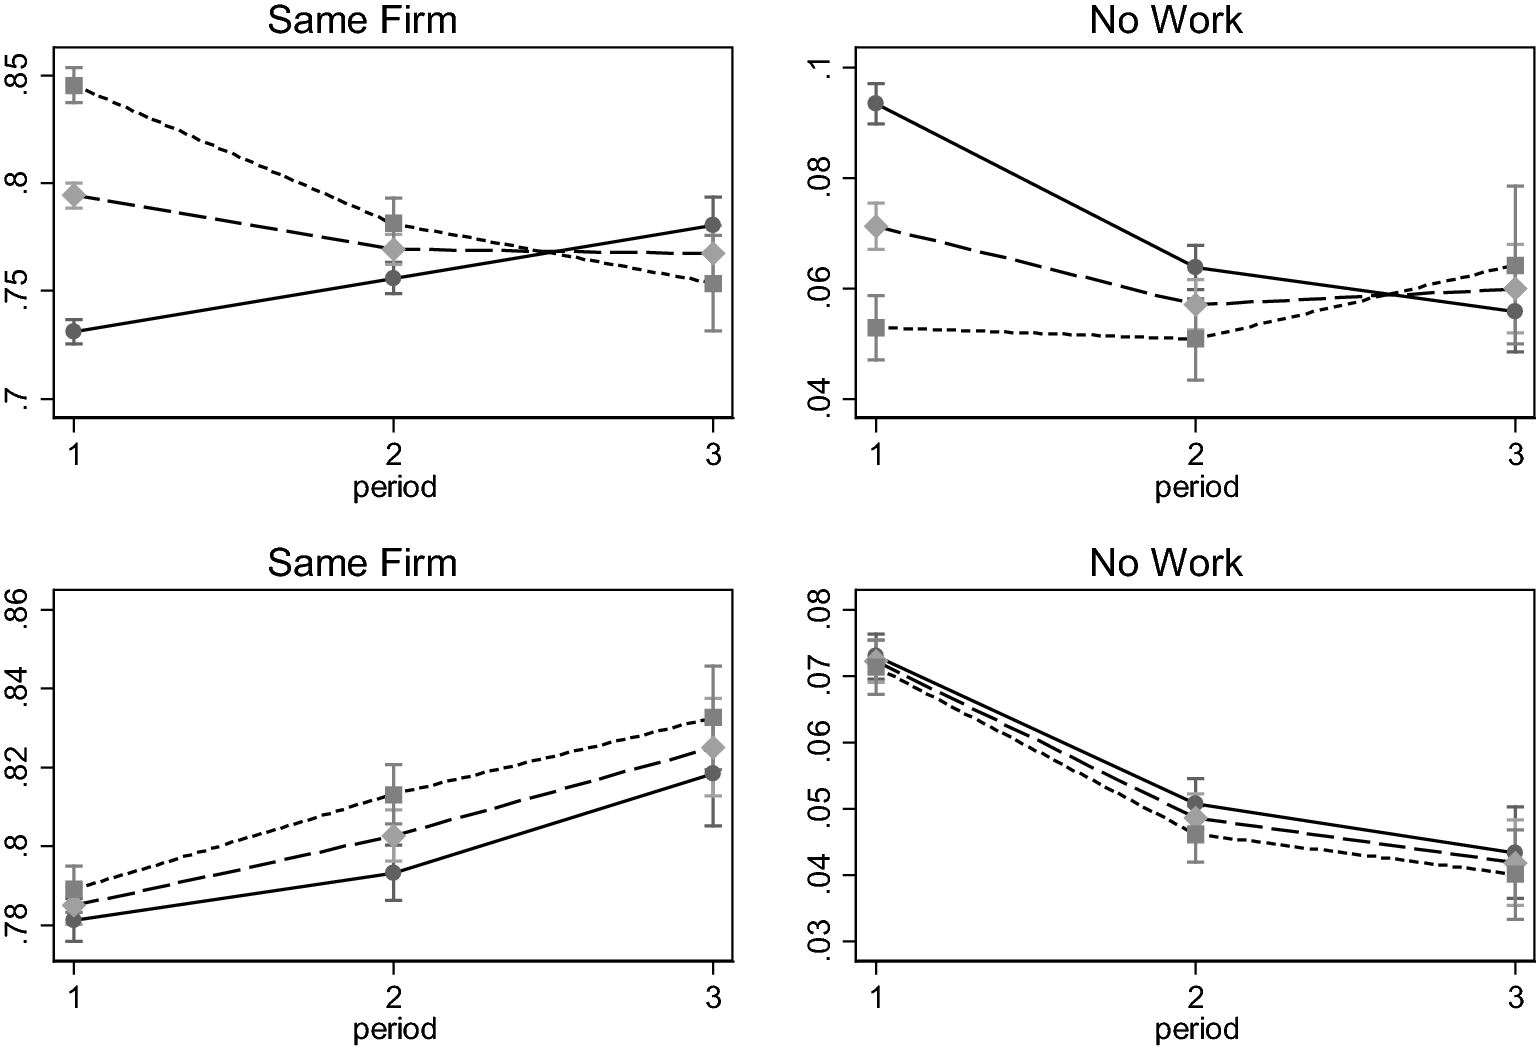 Successful return to work during labor market liberalization: the